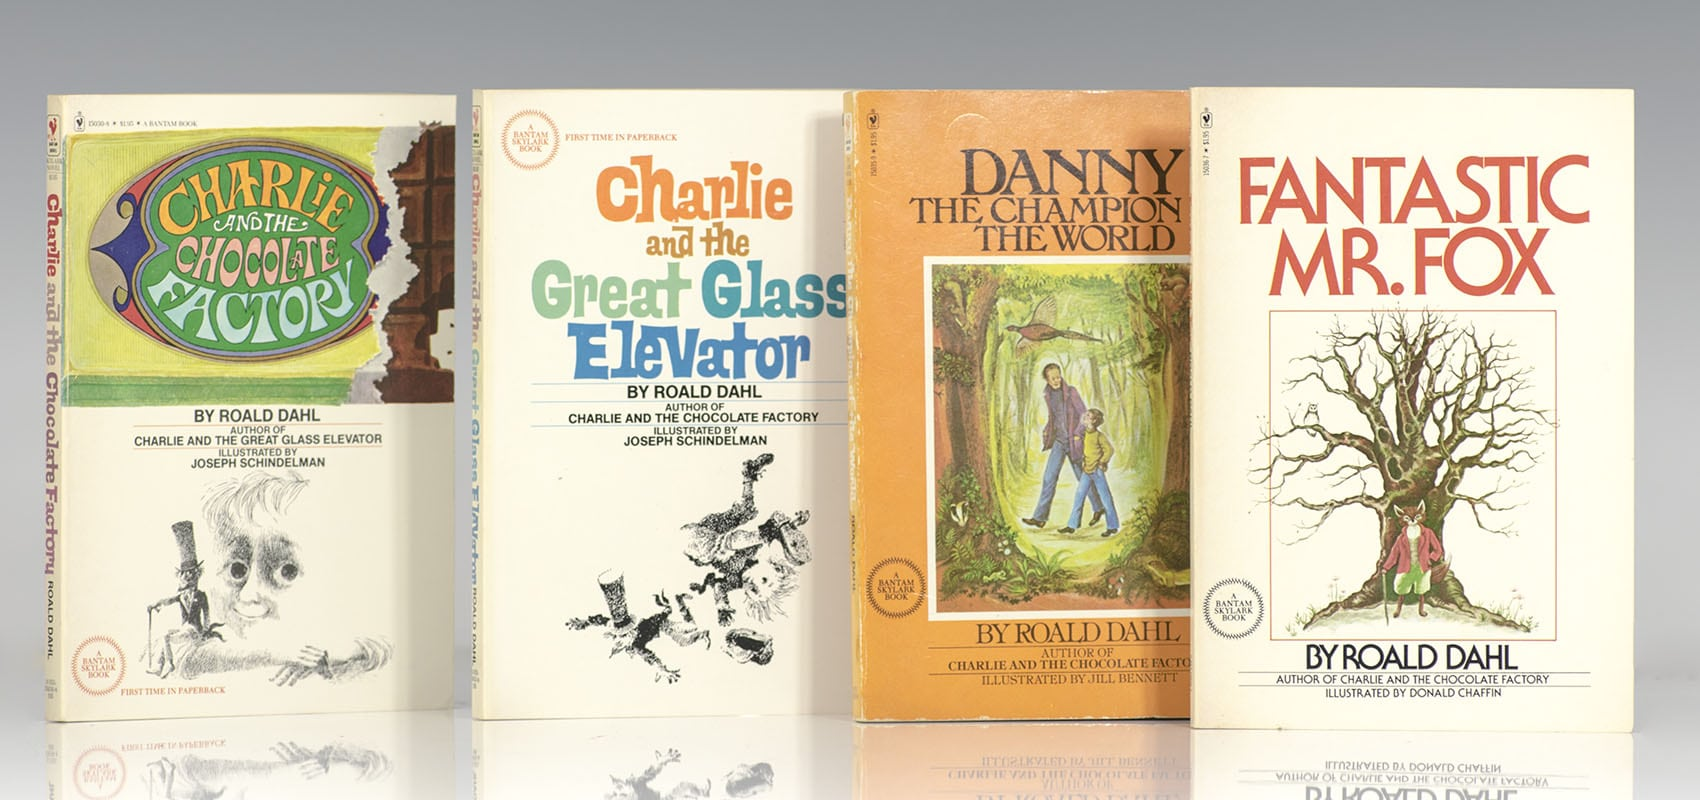 Charlie and the Chocolate Factory Plus Three More All-Time Favorites: Charlie and the Great Glass Elevator, Danny the Champion of the World, and Fantastic Mr. Fox.